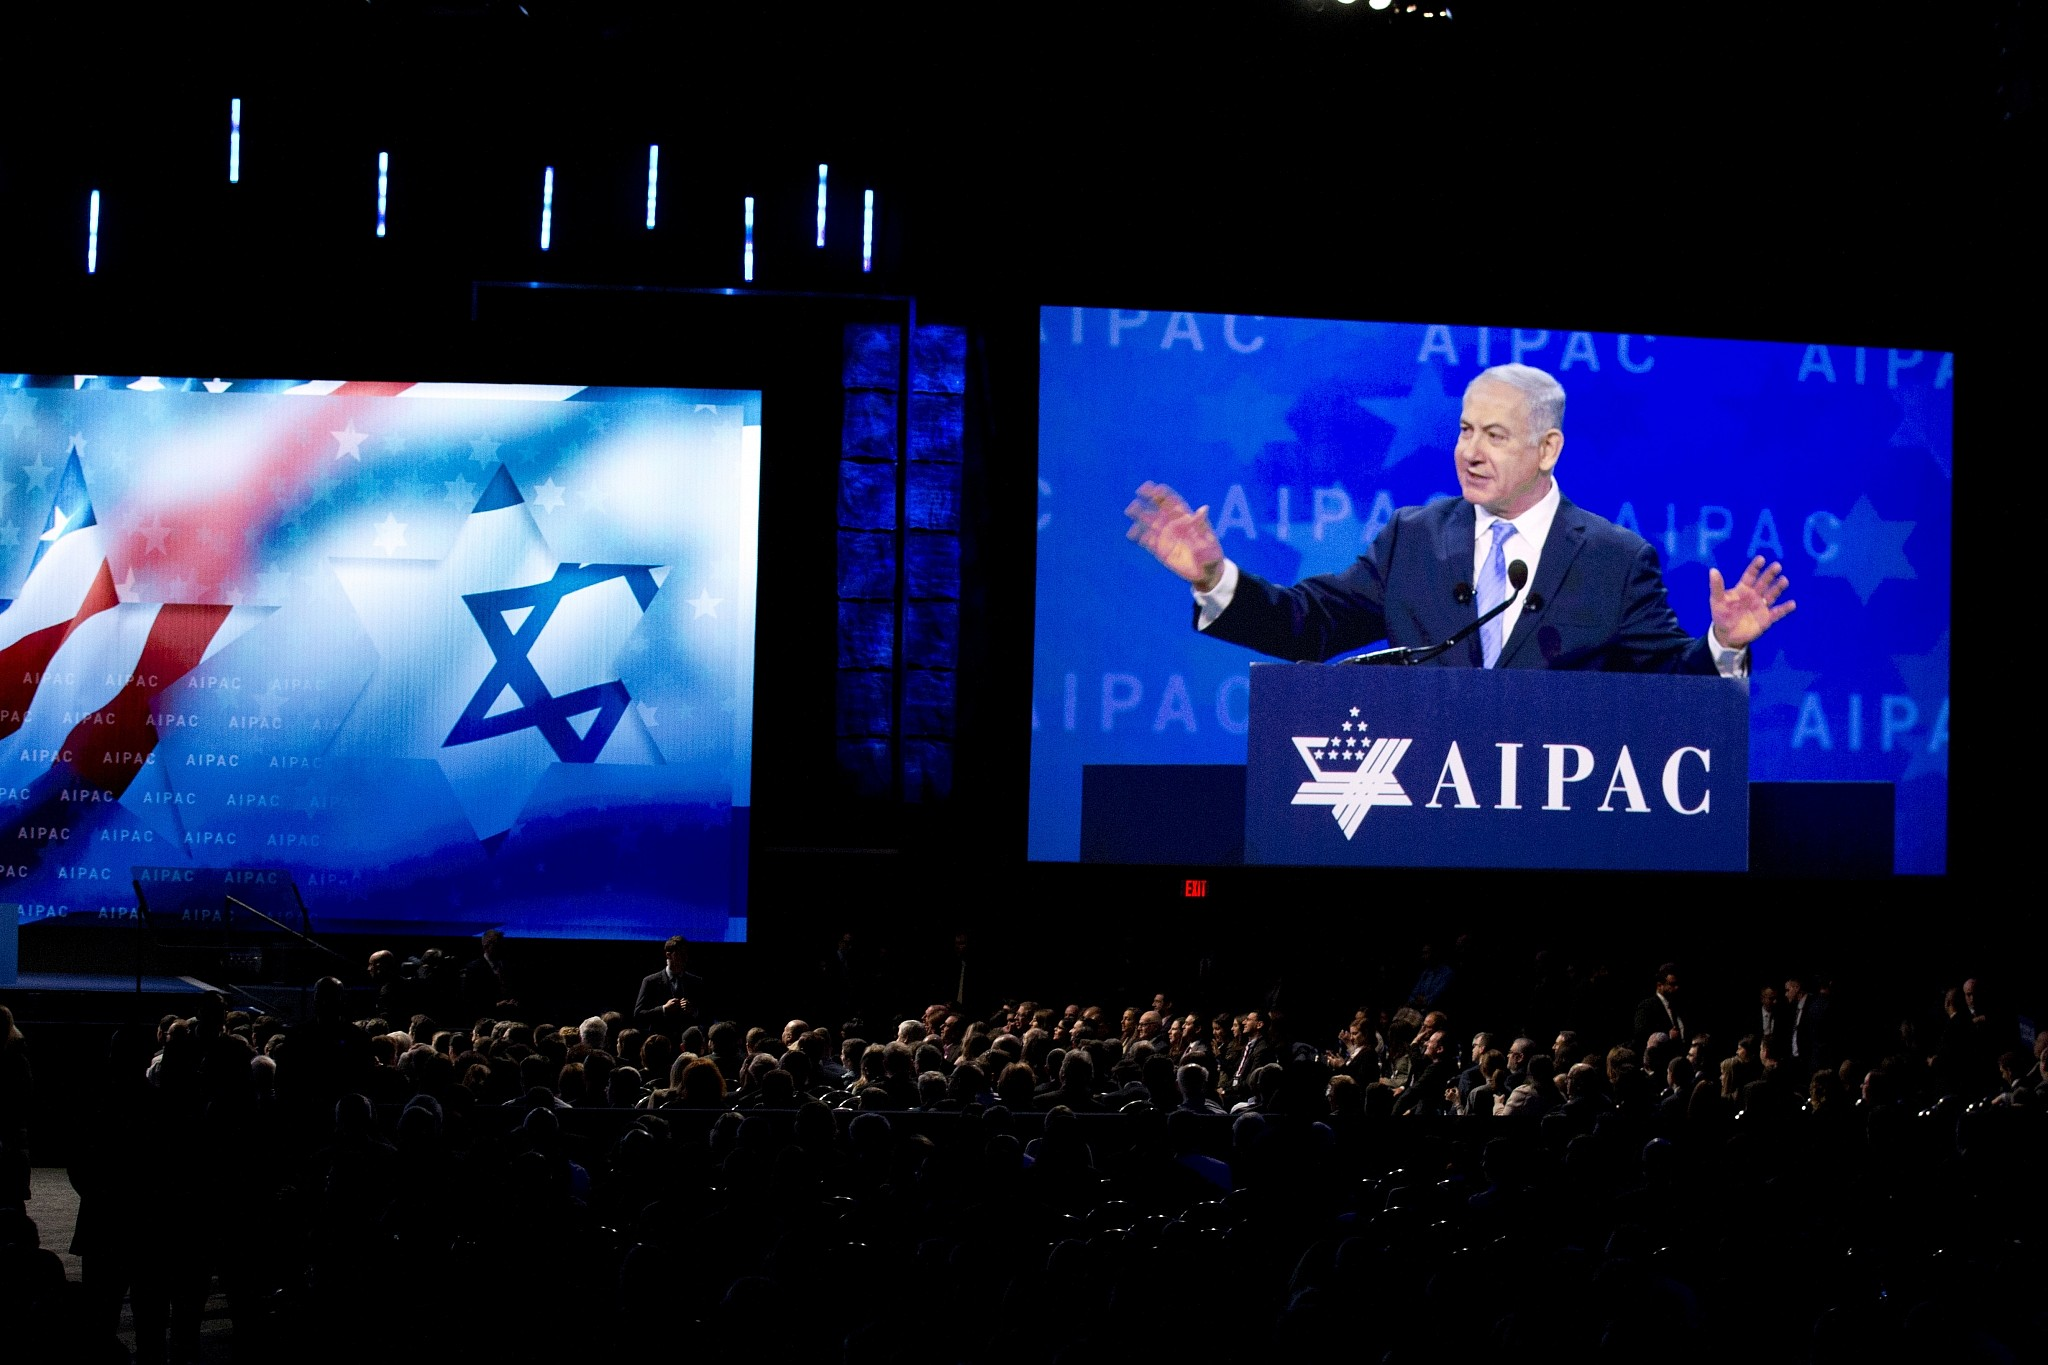 omar said aipac pays lawmakers to be pro